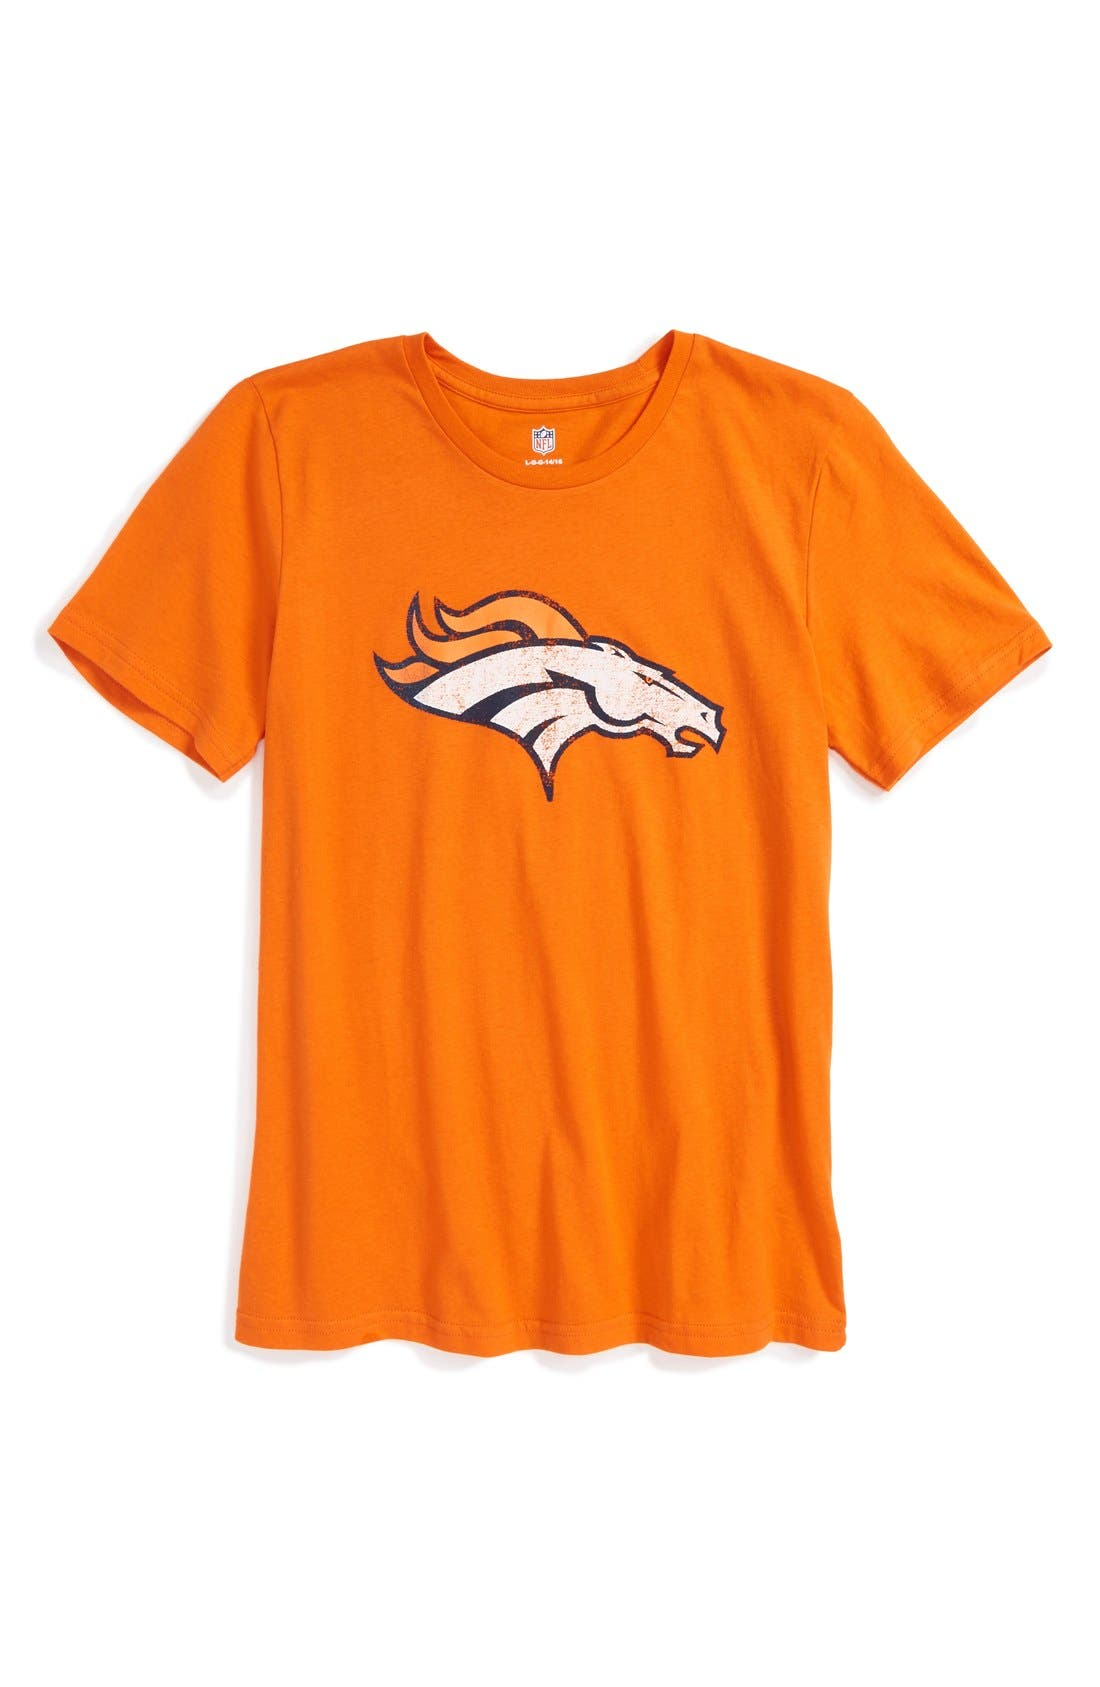 Outerstuff 'NFL - Denver Broncos' Distressed Team Logo Graphic T-Shirt (Toddler Boys, Little Boys & Big Boys)